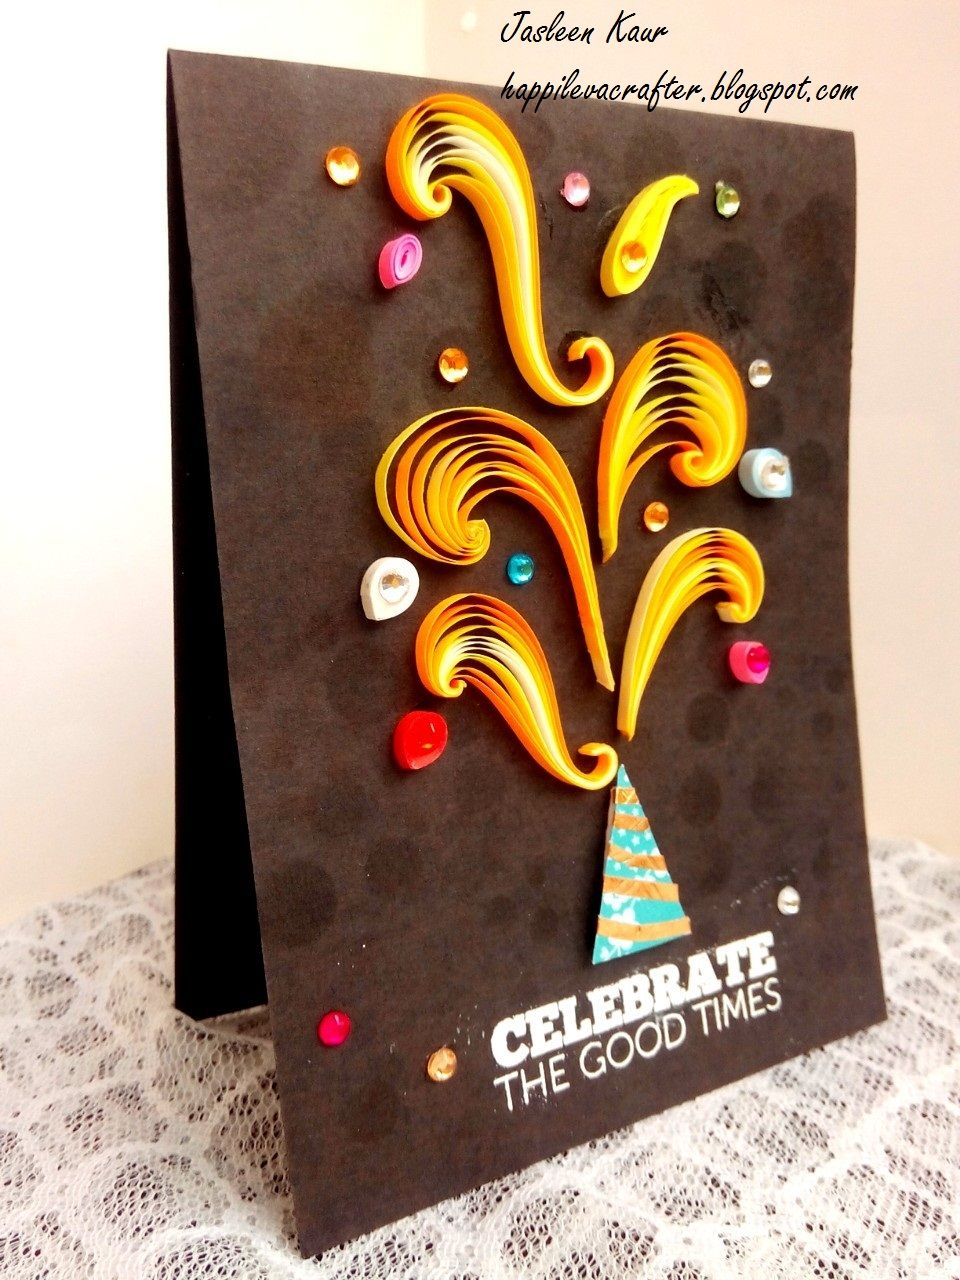 Handmade Diwali Cards 2016 Handmade Diwali Cards Hii Guys I Am Back With Some New And Interesting Topic In Diwa Diwali Cards Cards Handmade Festive Cards